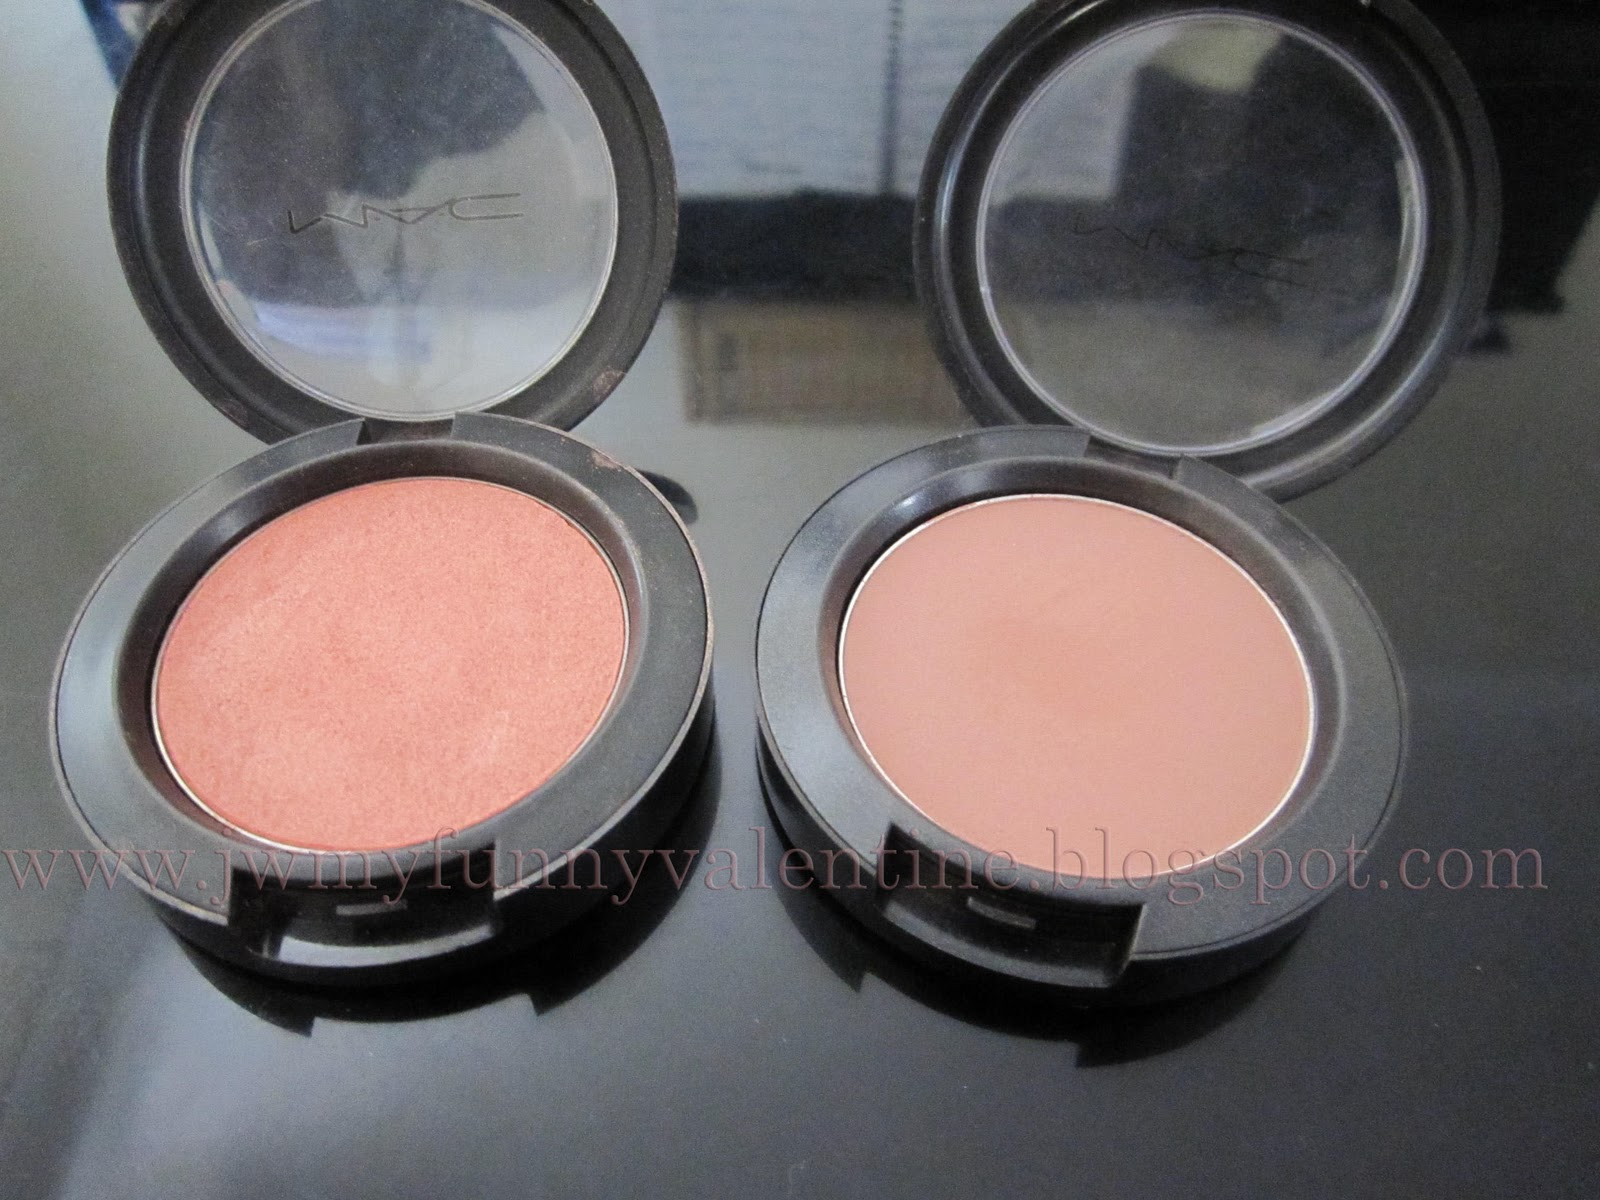 My Blushes: Swatches and Product Photos | My Funny Valentine